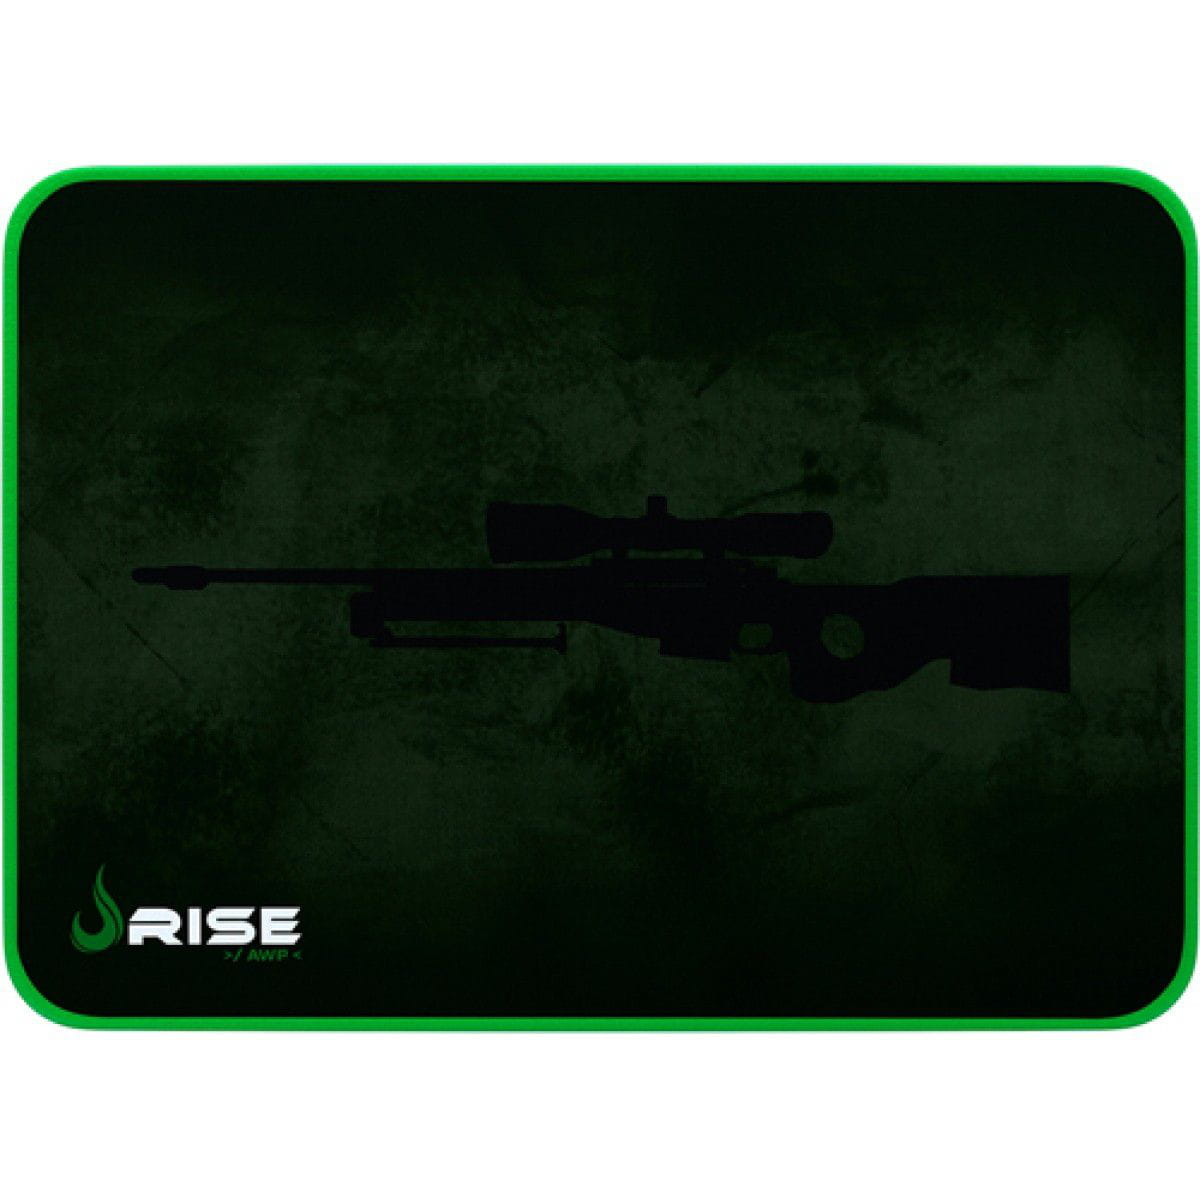 Mouse Pad Rise Gaming Sniper Costurado Médio - RG-MP-04-SG